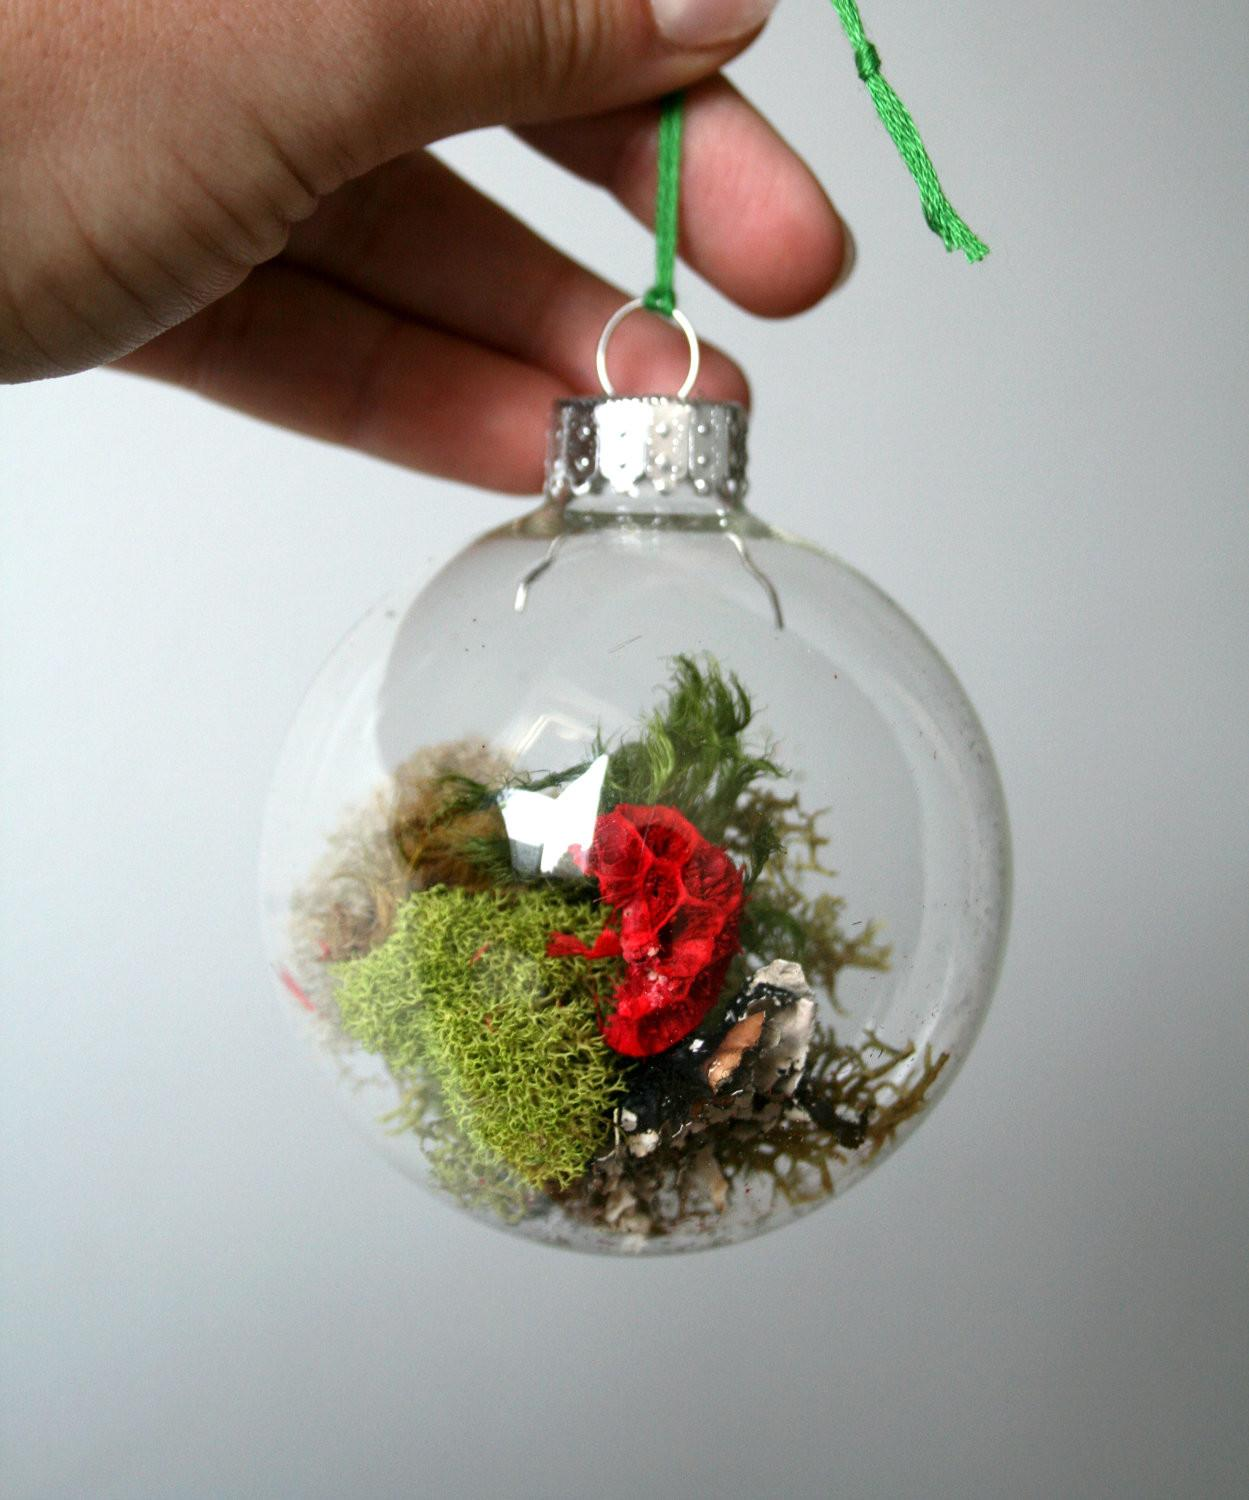 Phenomenal Diy Christmas Terrariums Plants Not That Express The Ultimate In Luxury Incredible Pictures Decoratorist